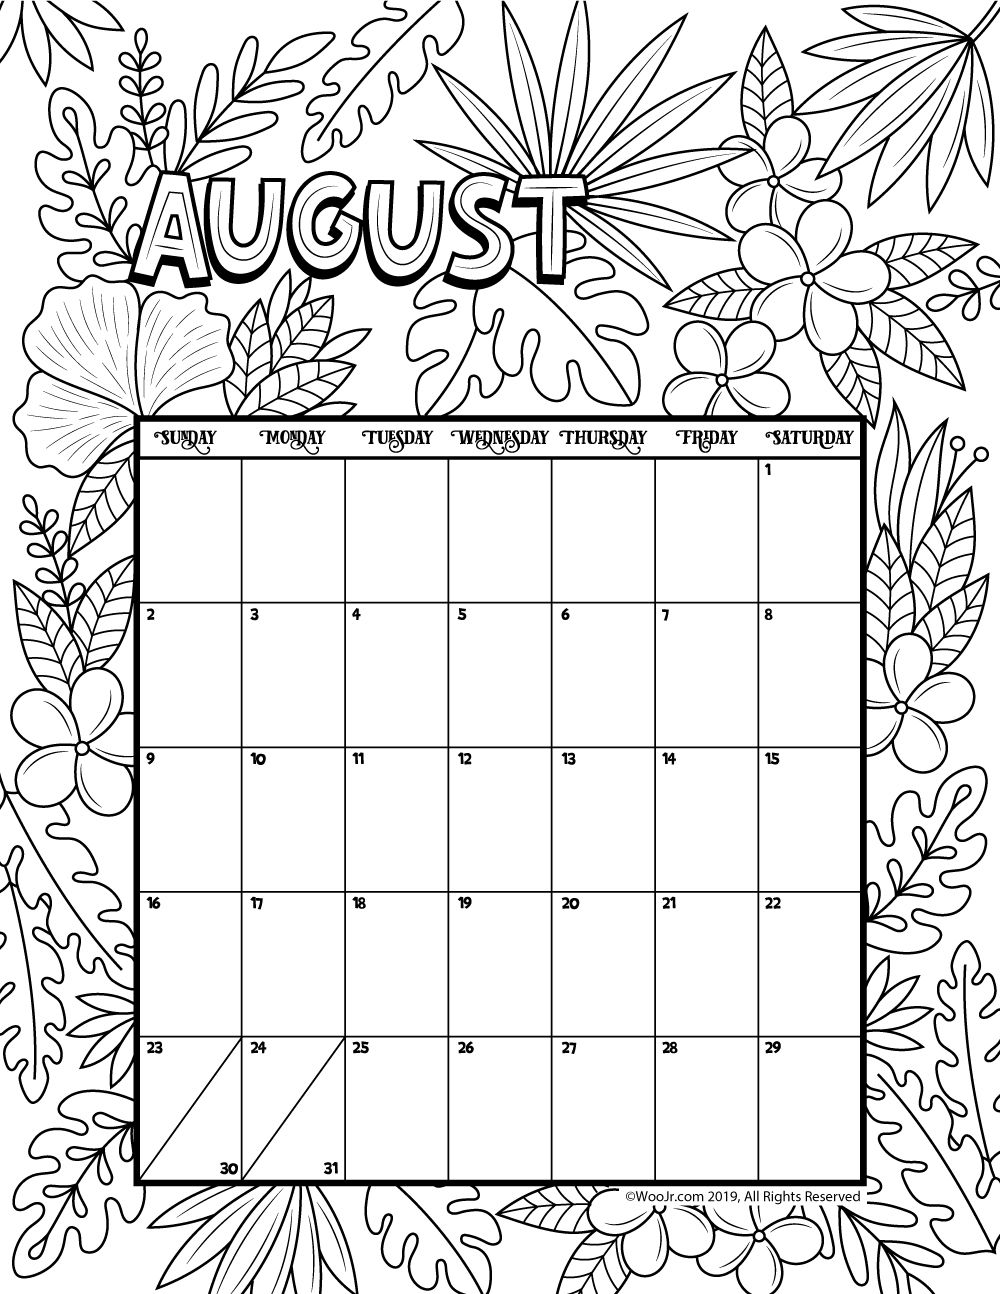 January 2019 Coloring Calendar Printable coloring pages